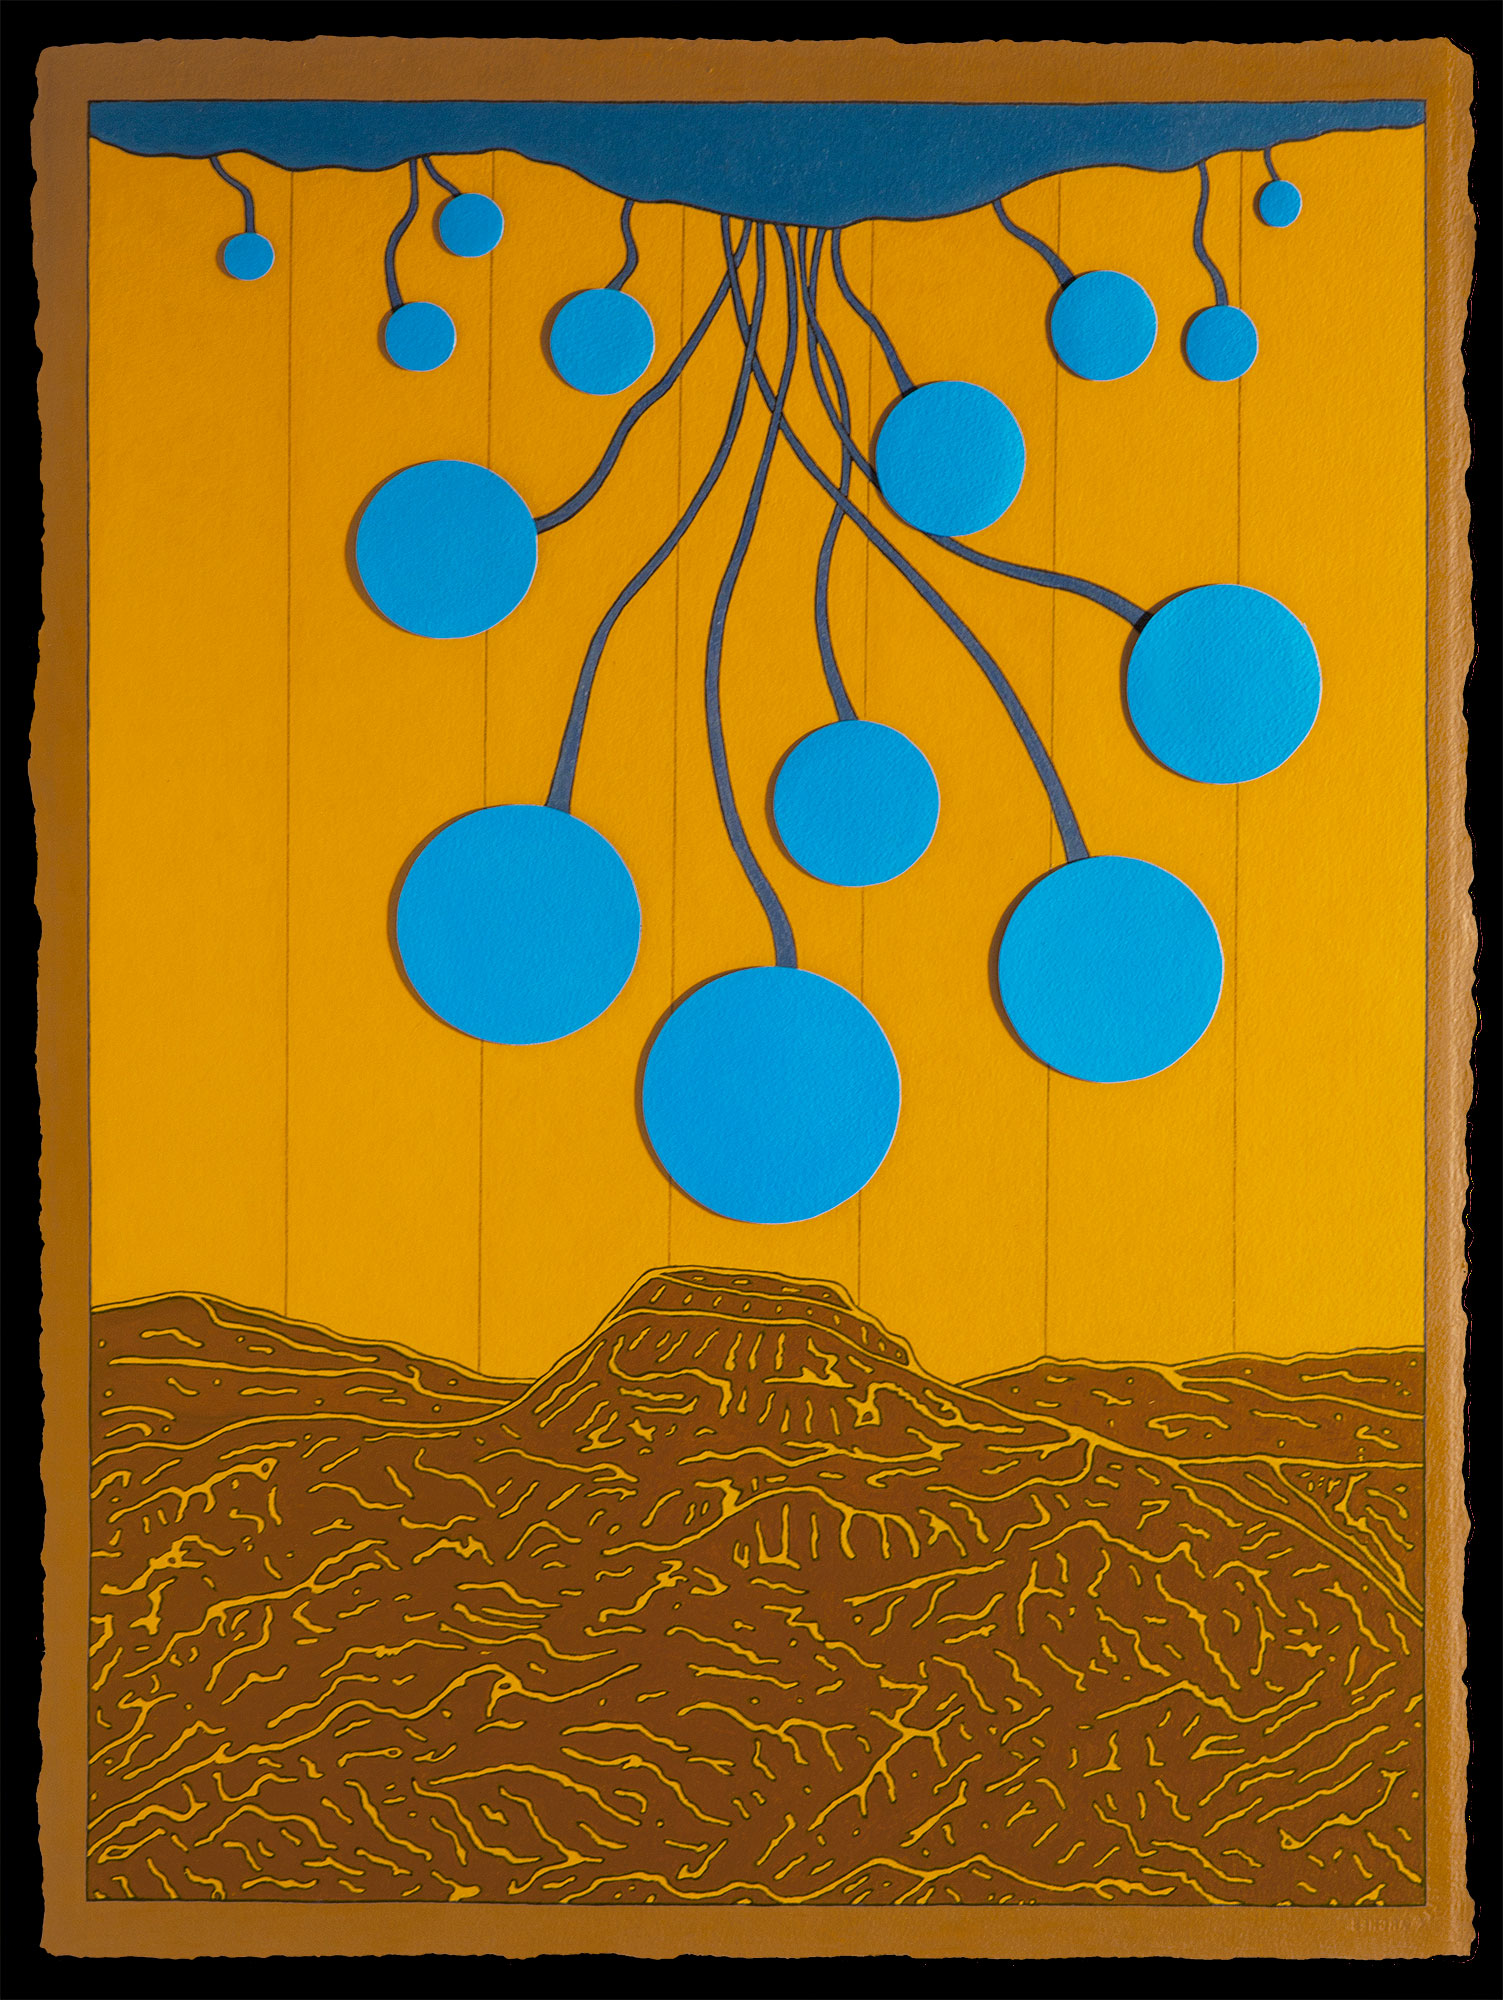 Yellow Landscape with Blue Spheres